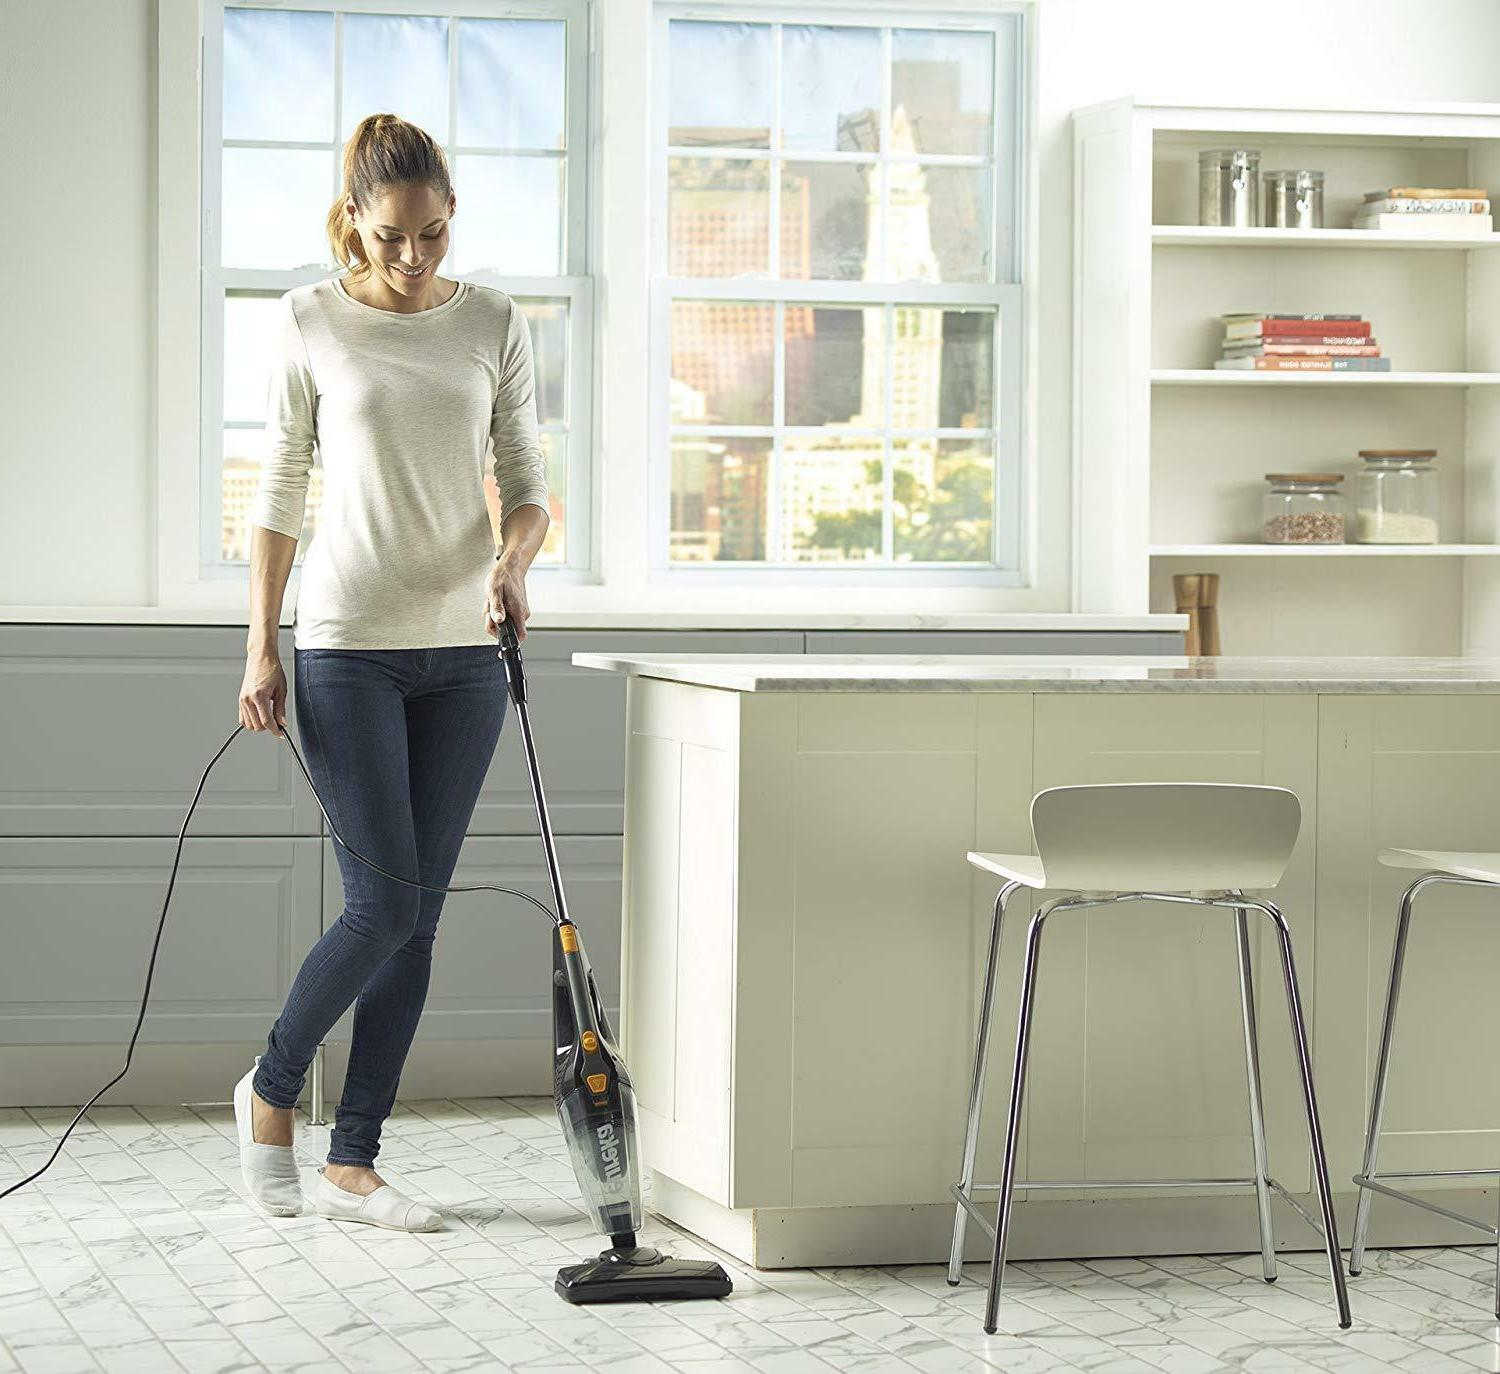 Wood Floor Vacuum Lightweight Best Upright Cleaner Electric New